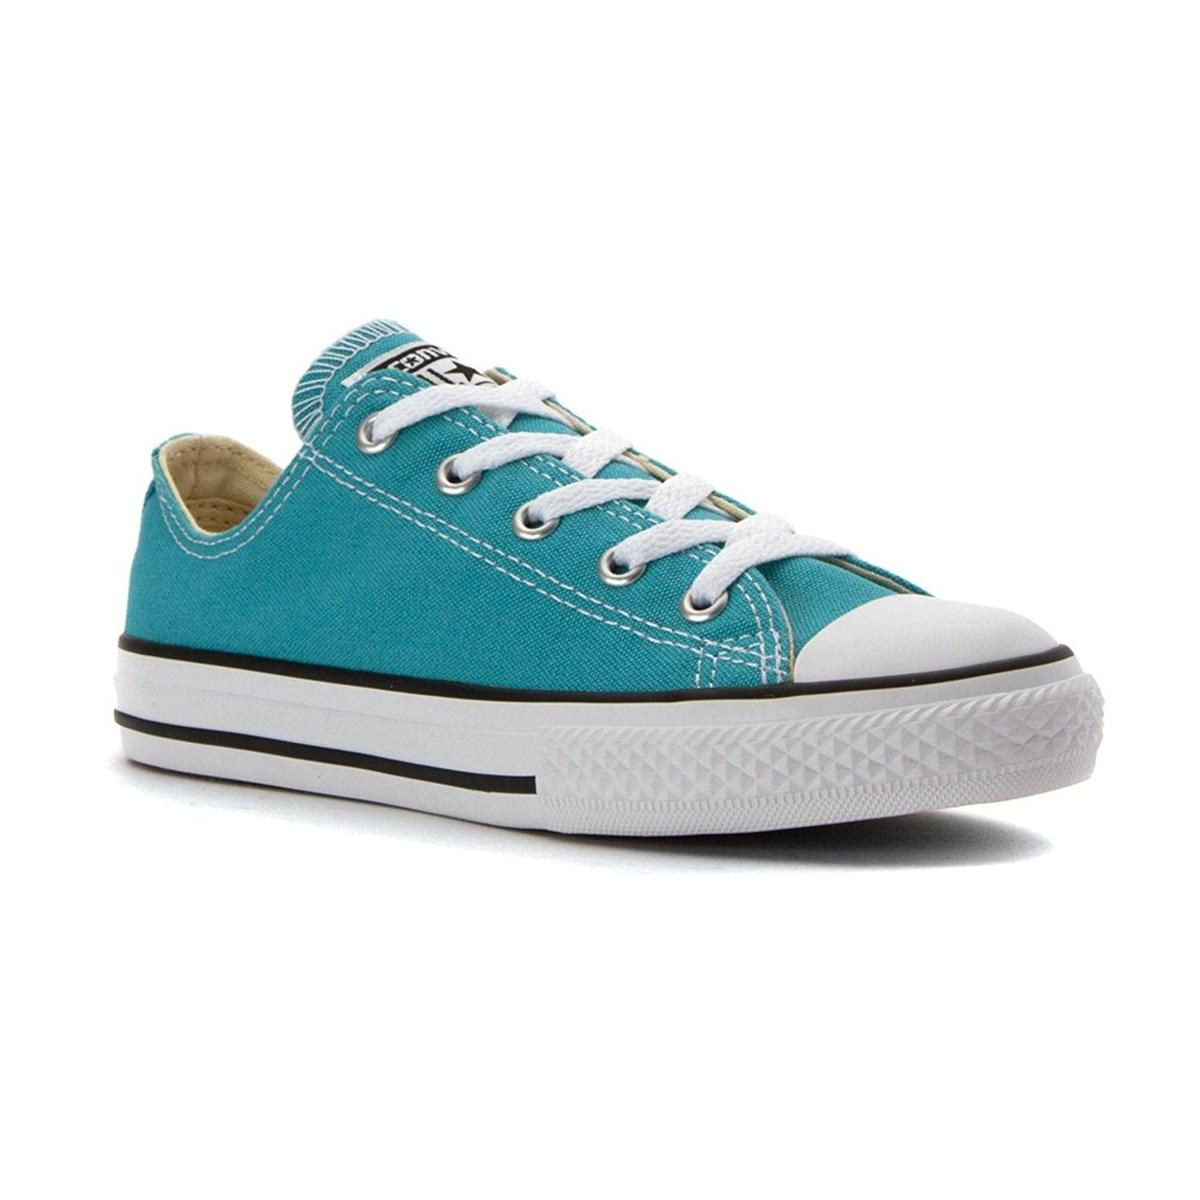 Converse Chuck Taylor All Star Low Top Aegean Aqua Shoes -Youth by Converse